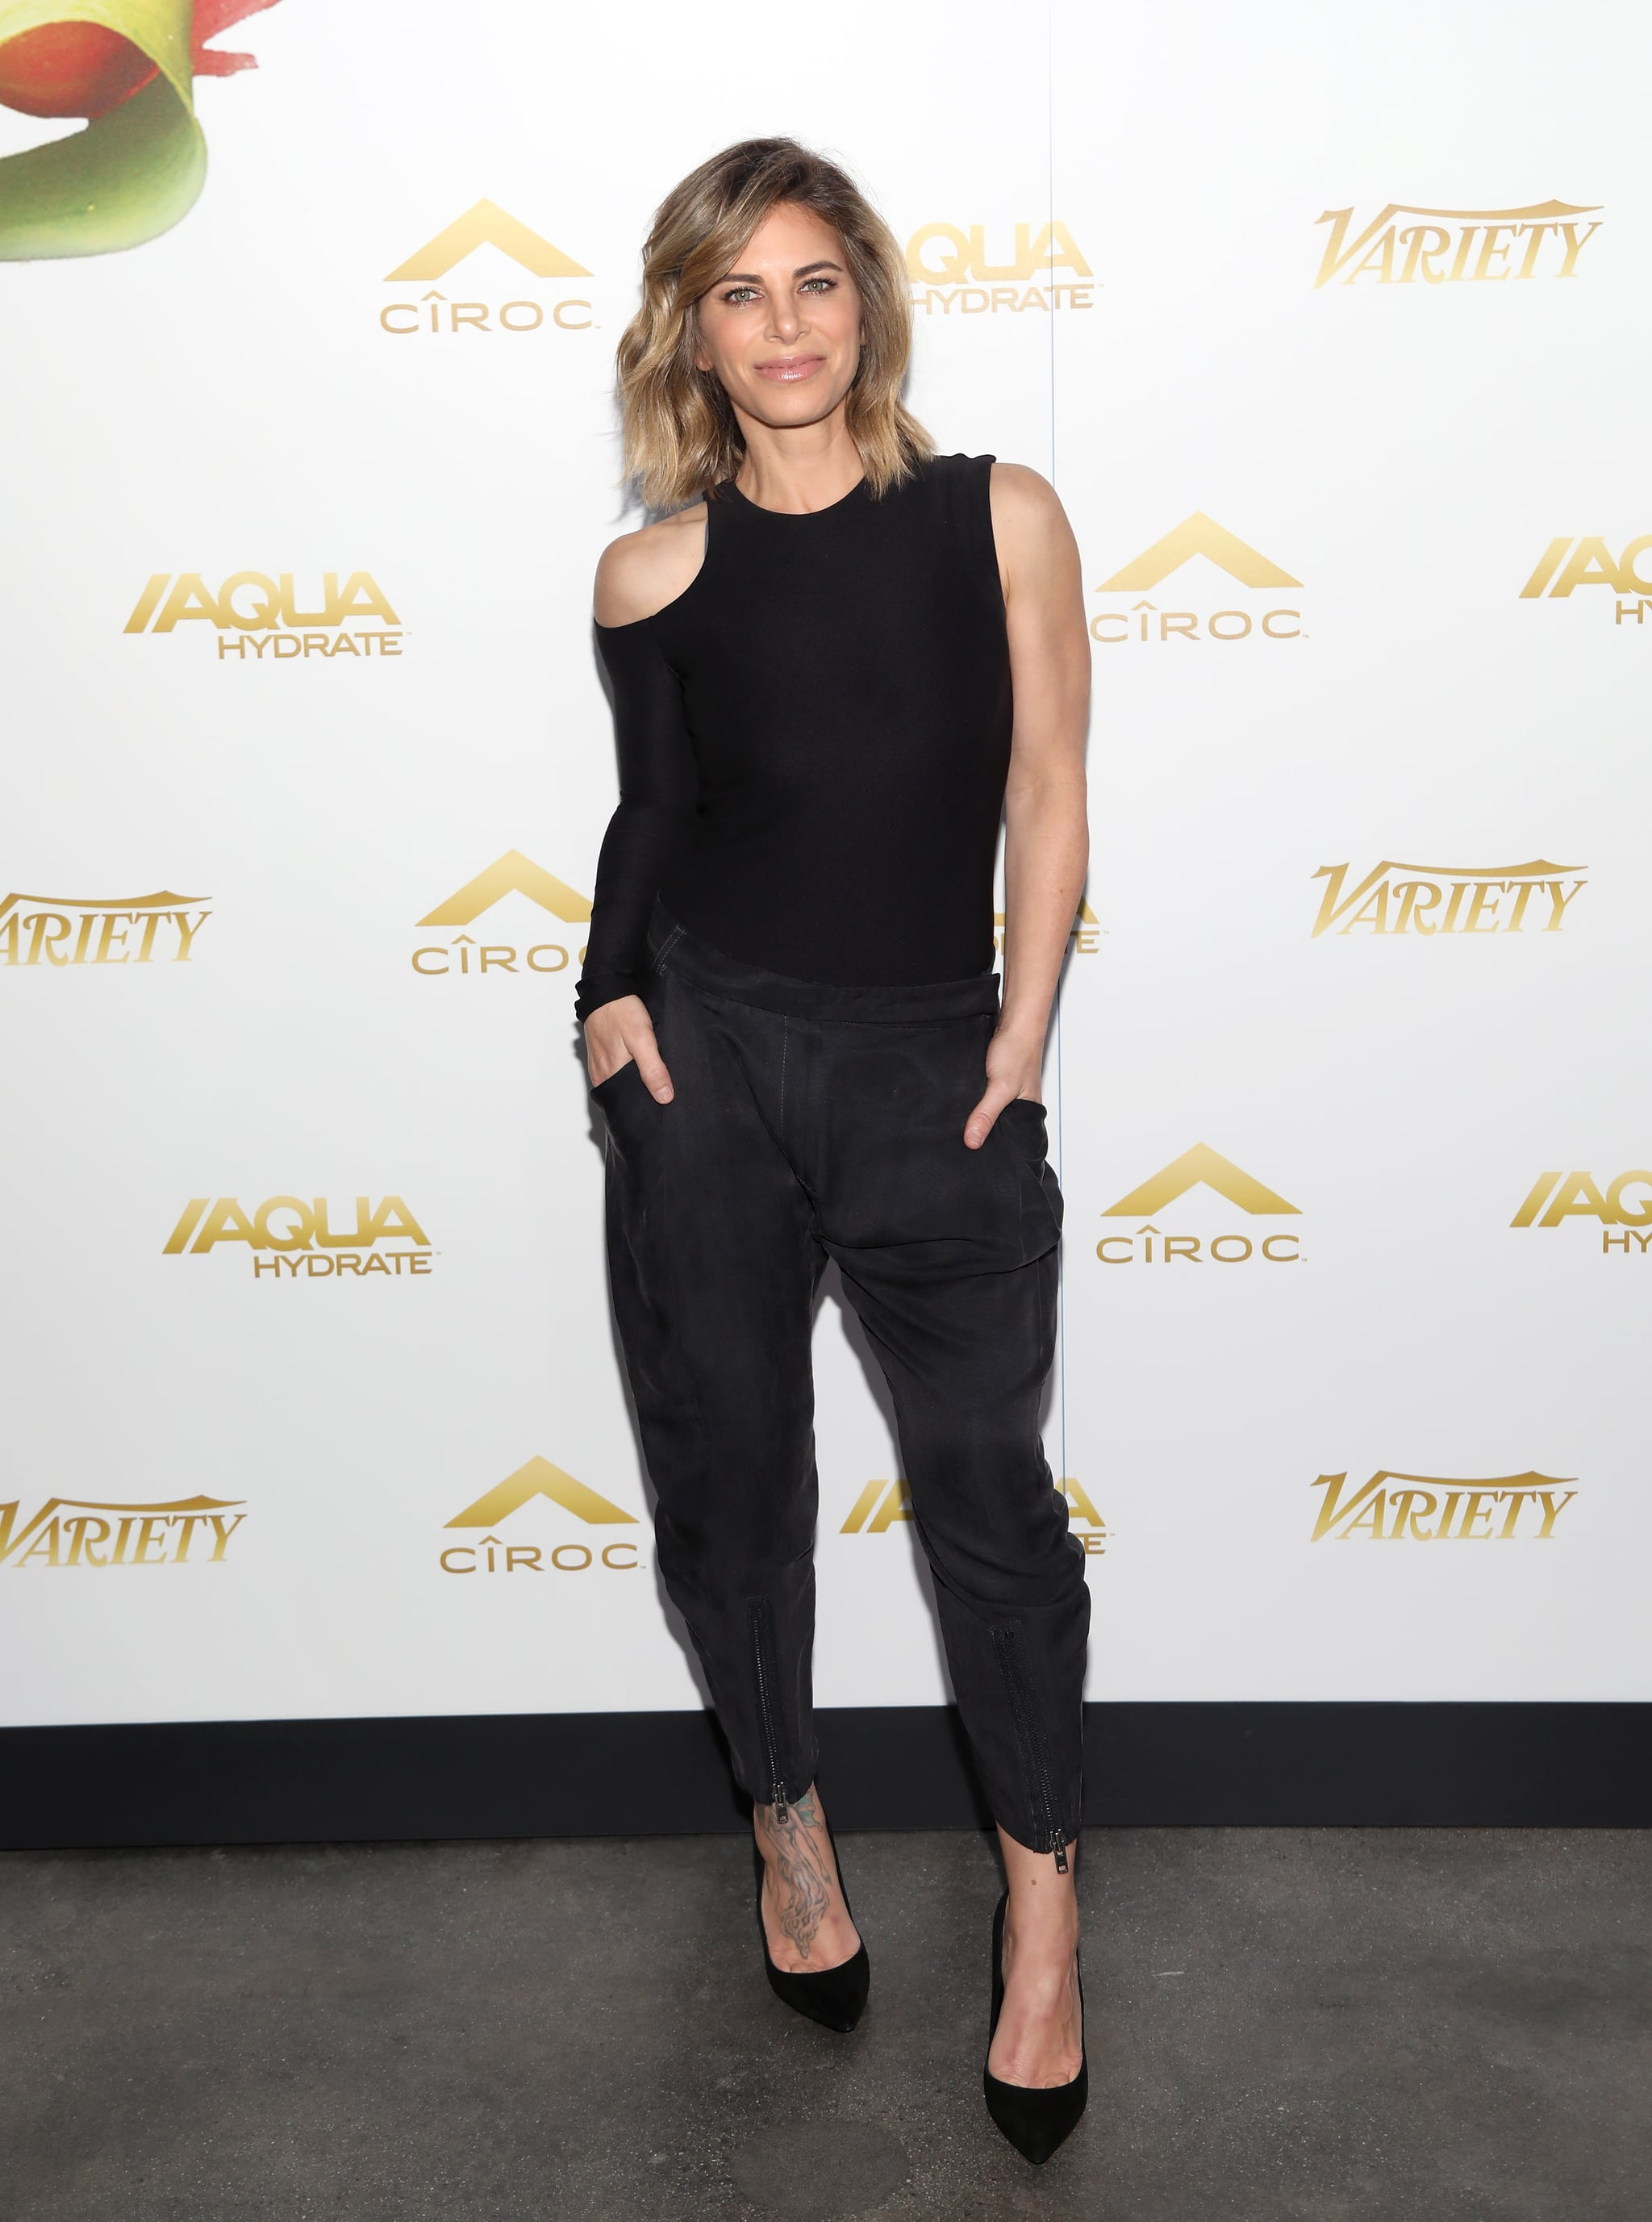 Jillian Michaels Says You Should Lift Weights This Often For Fat Loss